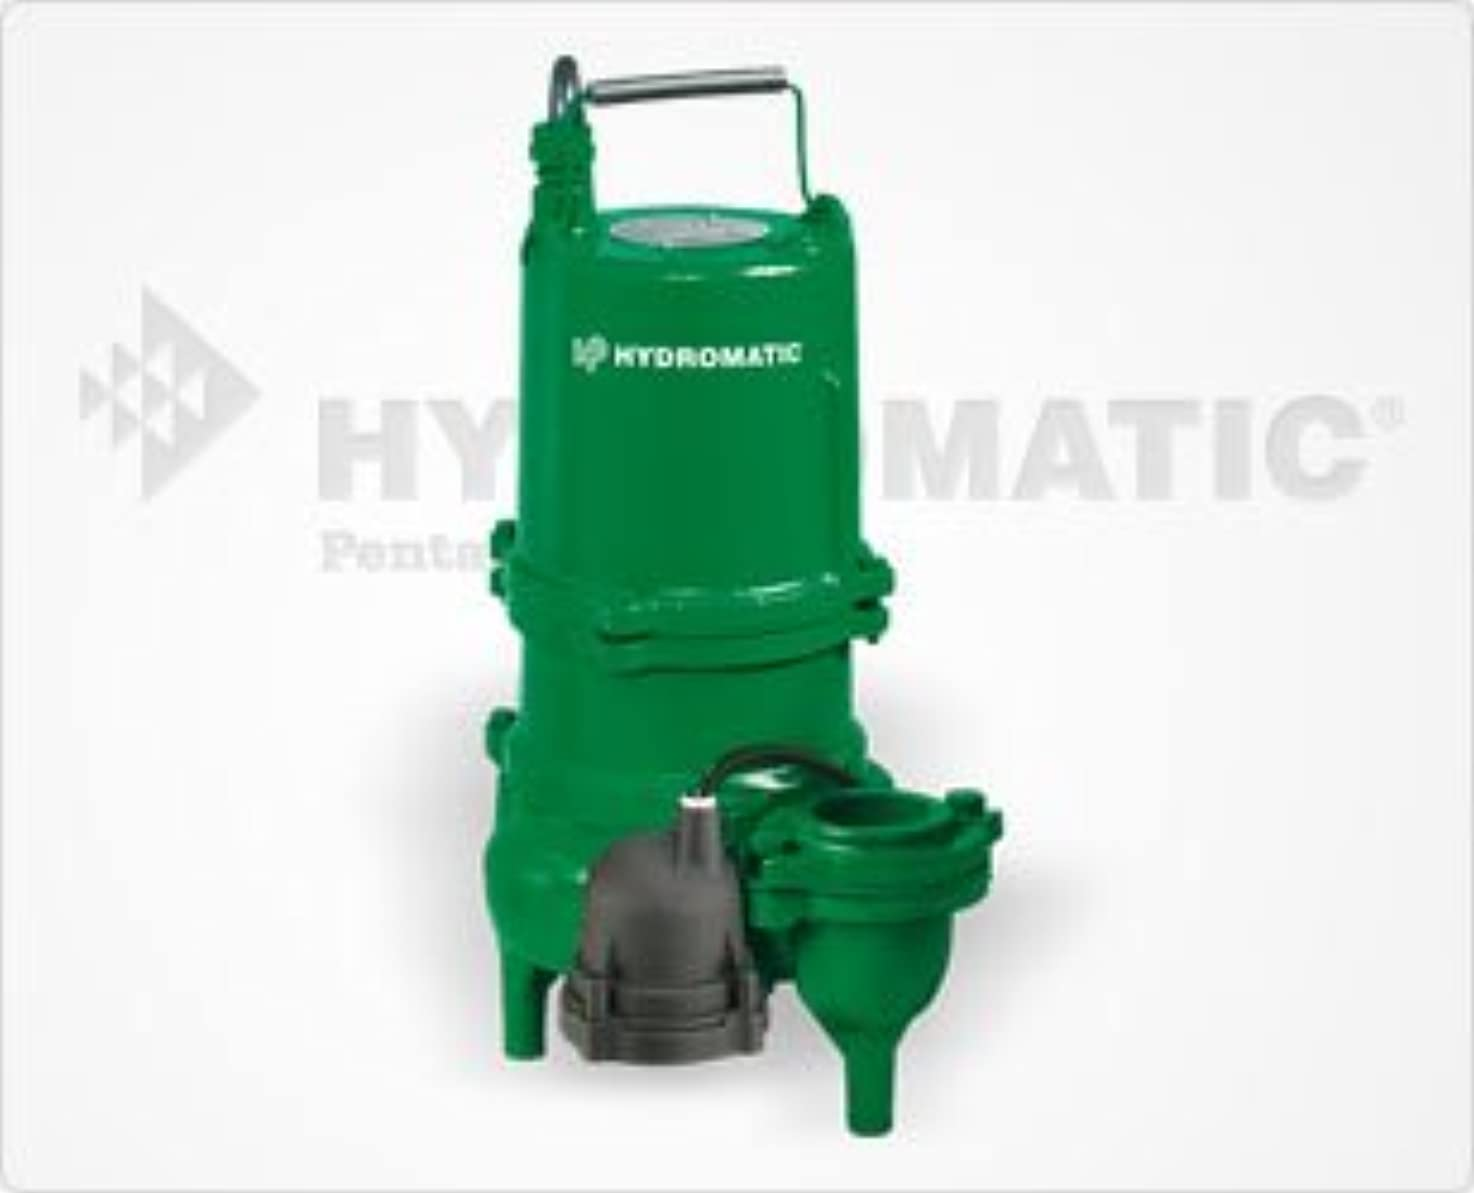 Hydromatic SK60M4 Submersible Sewage Ejector Pump (Manual), 3-Phase, 460-Volt, 20' Power Cord